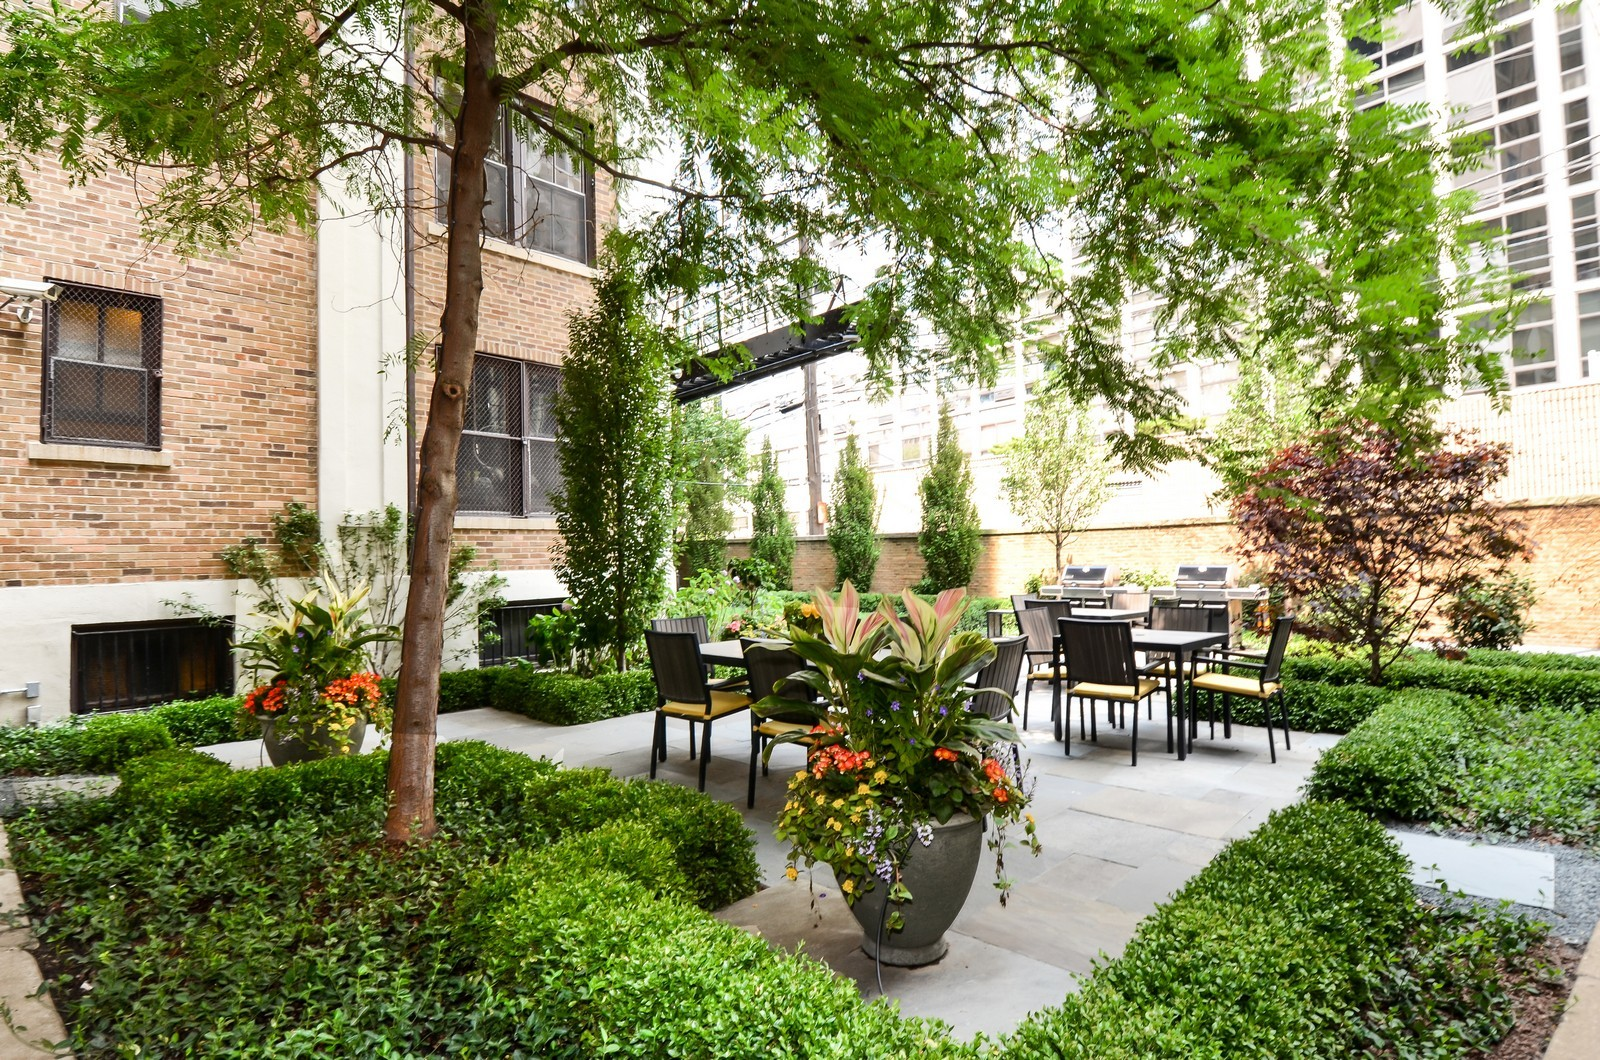 Real Estate Photography - 1209 N Astor, Unit 6S, Chicago, IL, 60610 - Location 1